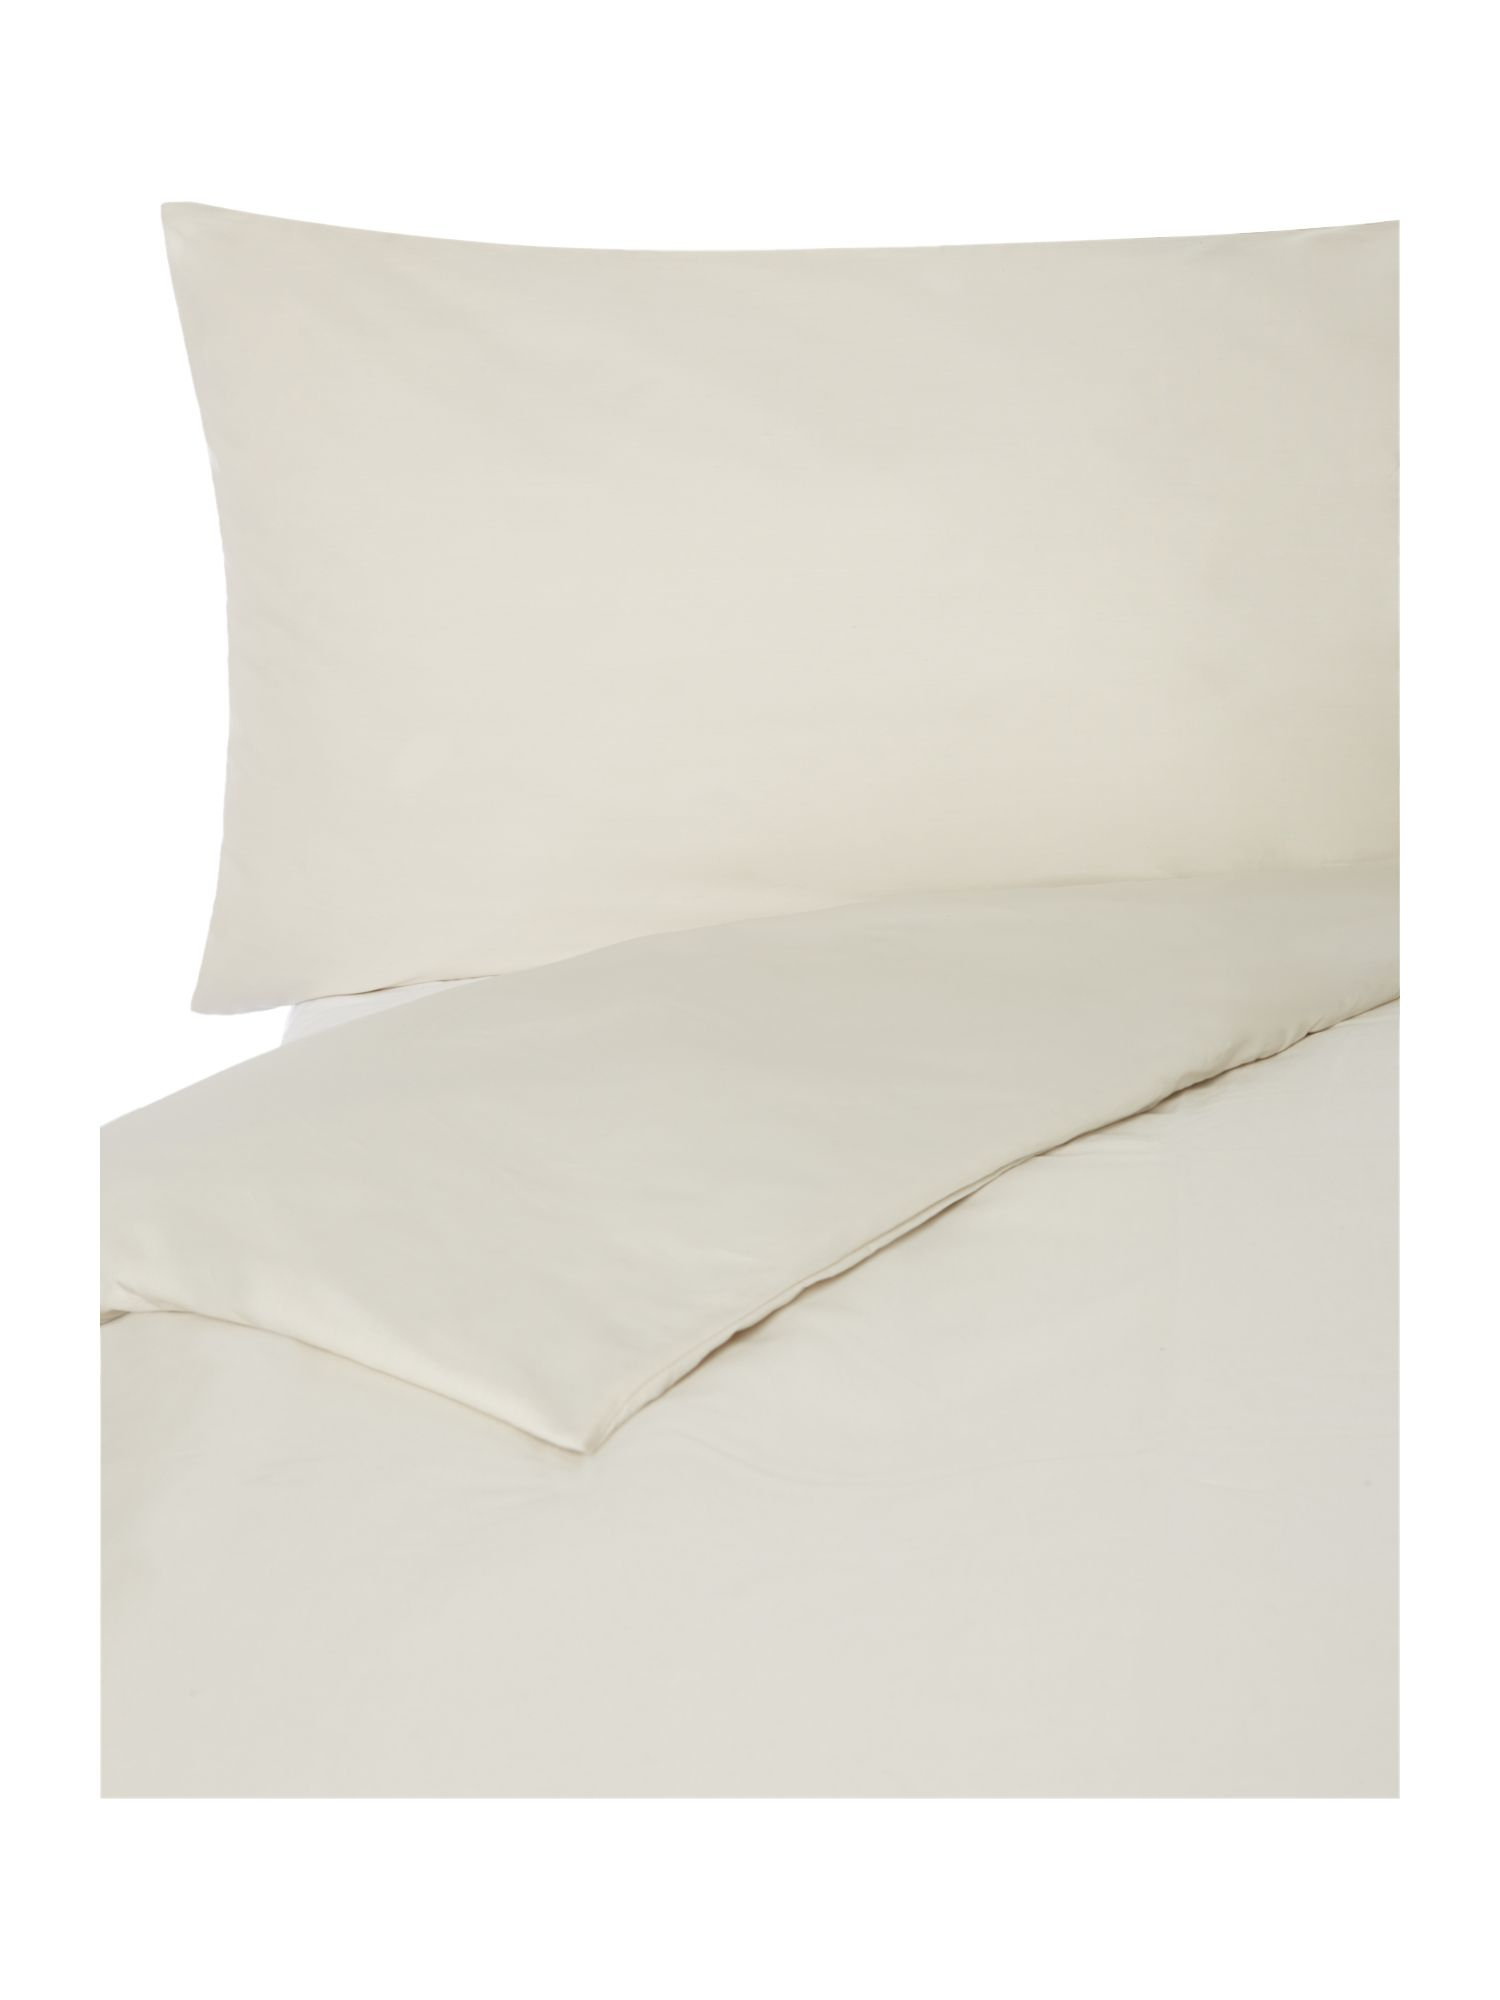 Putty plain dye 100% cotton bed linen